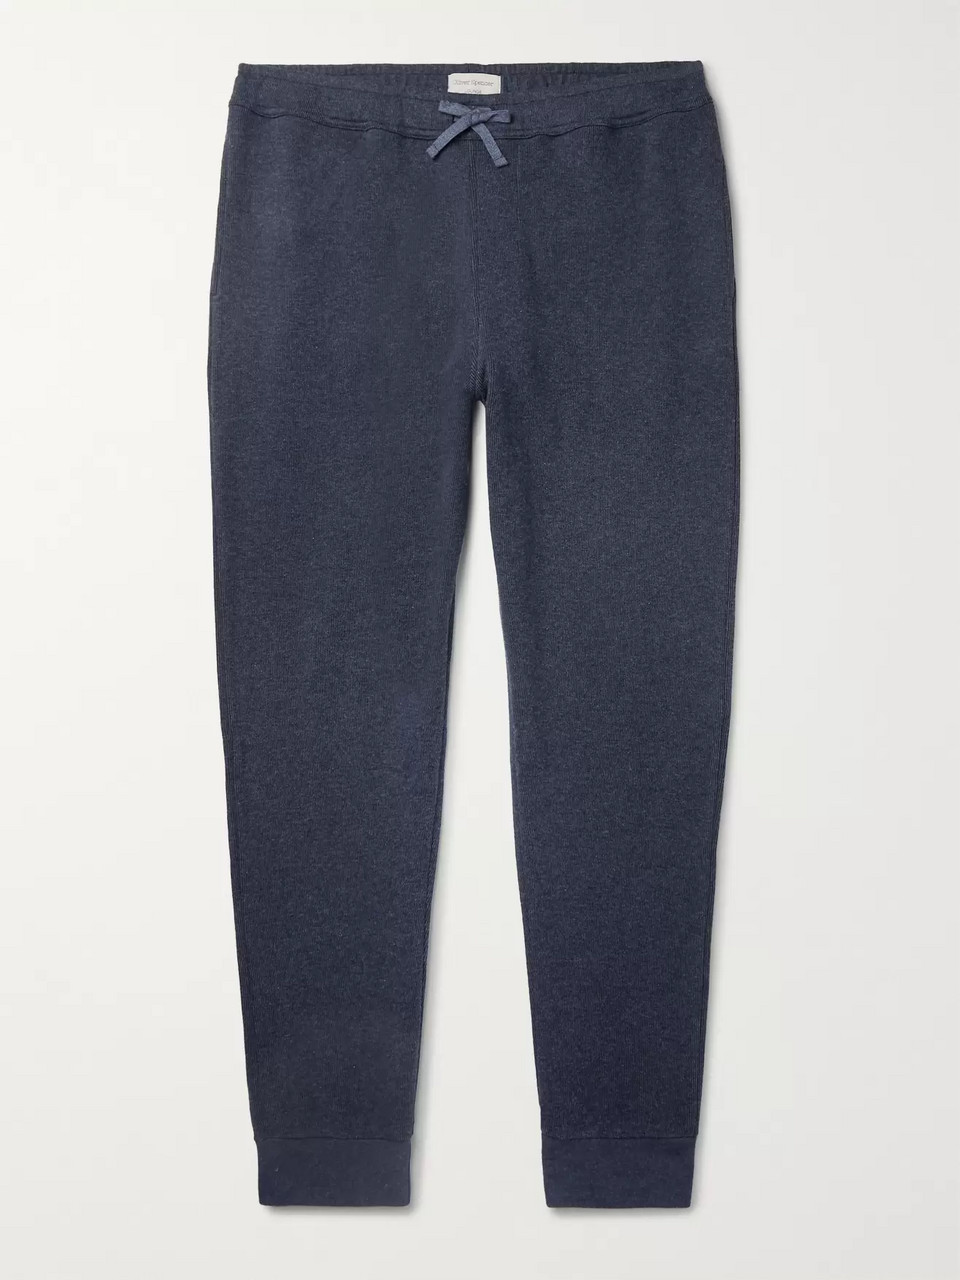 Oliver Spencer Loungewear Ribbed Cotton-Jersey Sweatpants